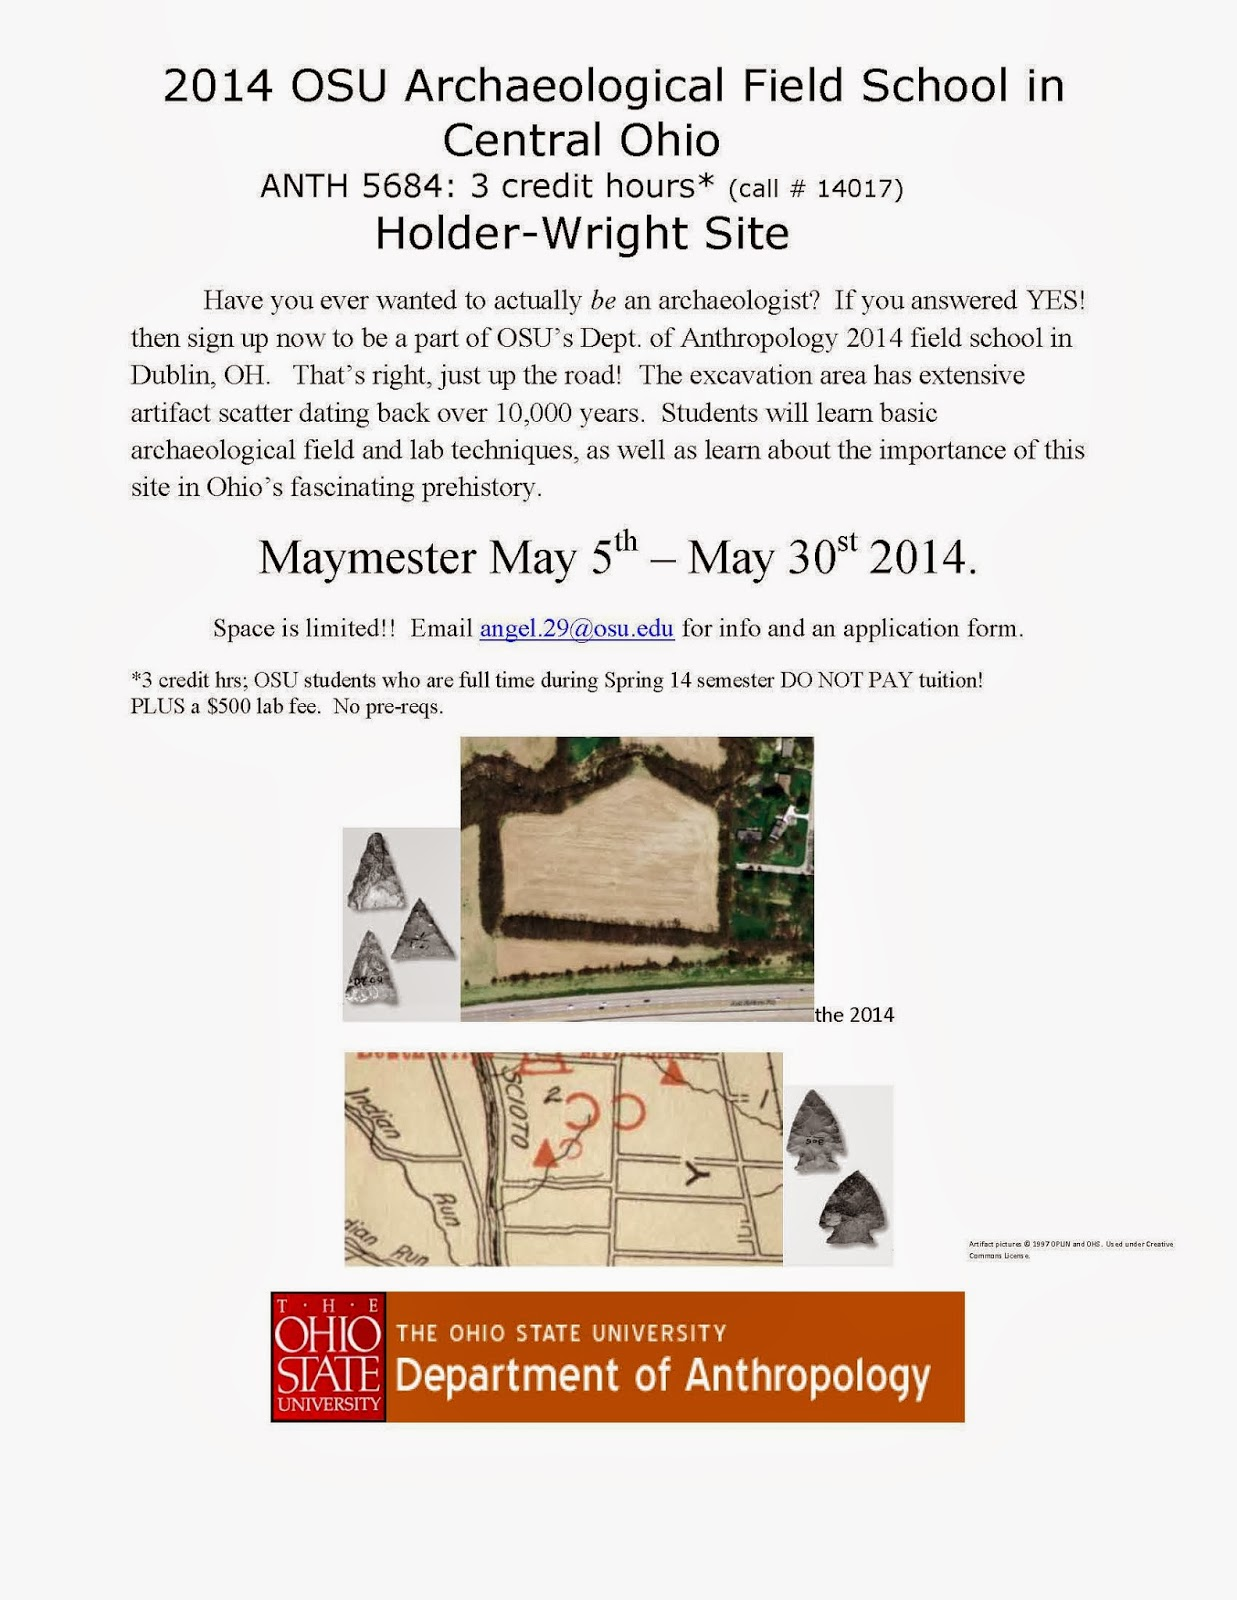 2014 OSU Archaeological Field School in Dublin, OH Flyer